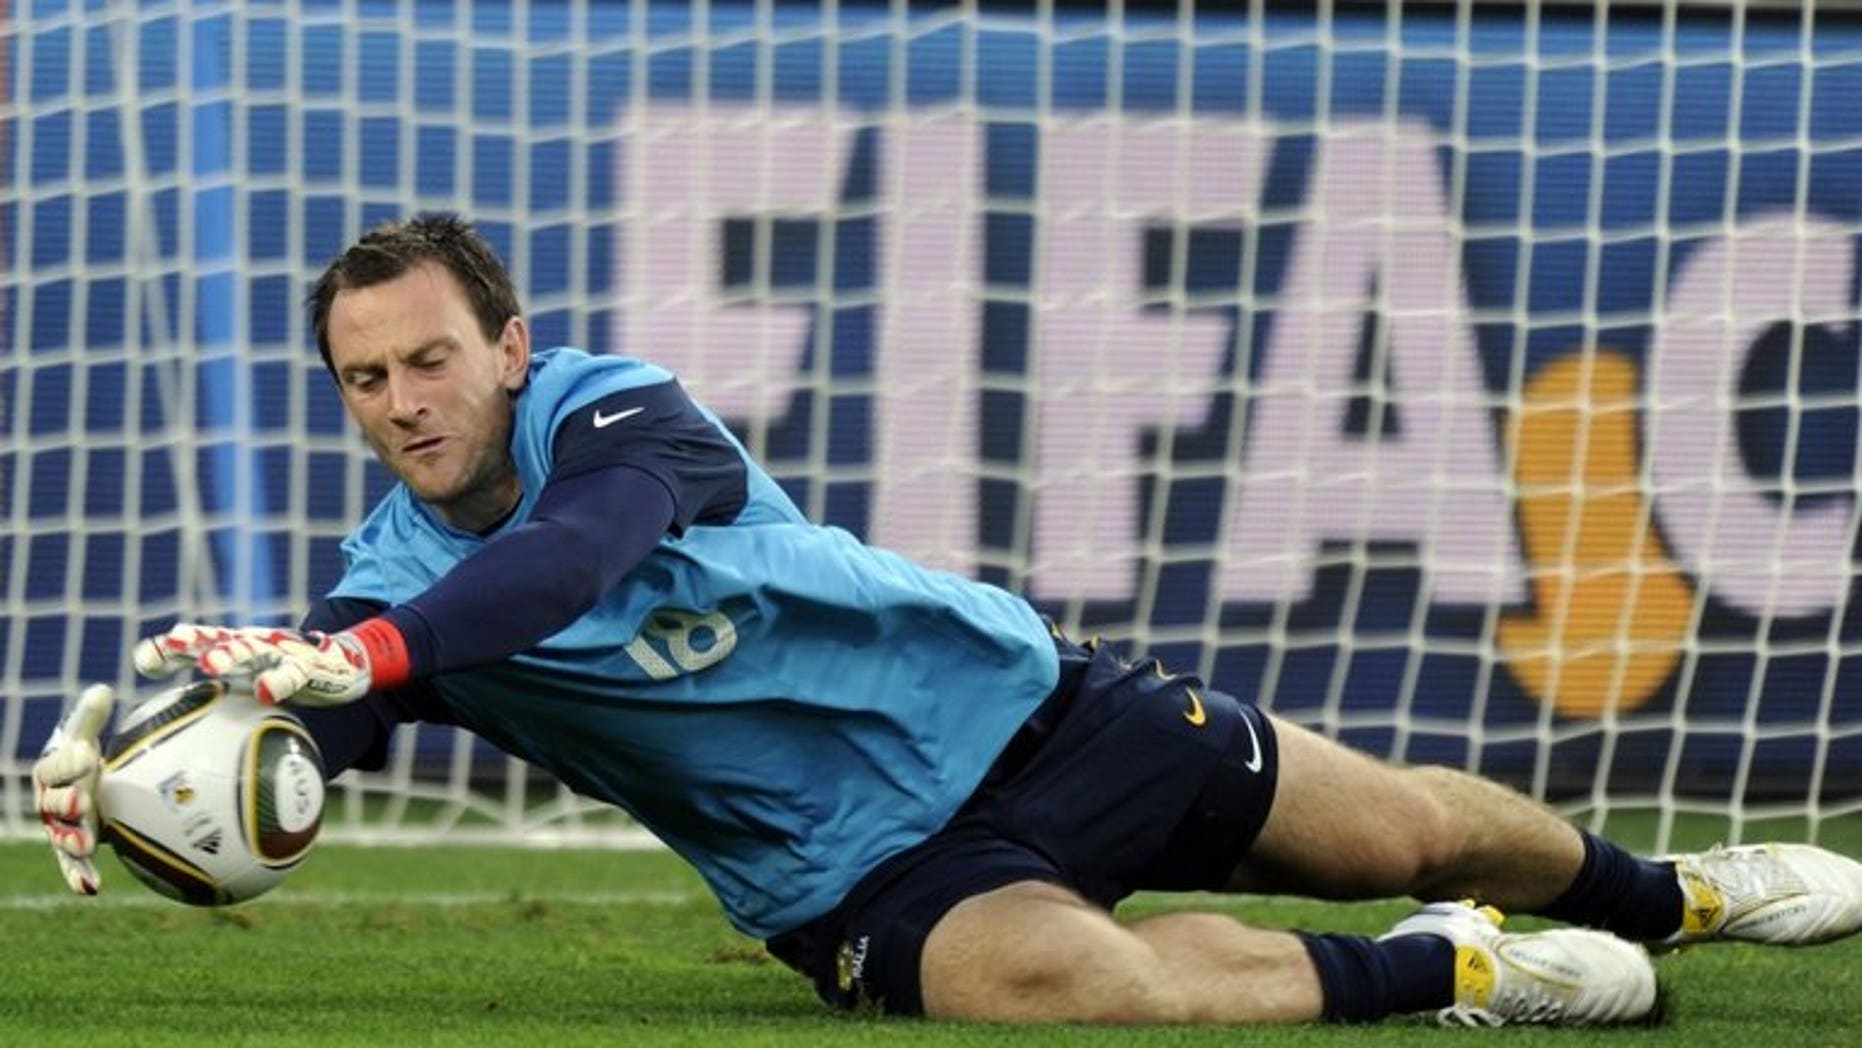 Australia's goalkeeper Eugene Galekovic stops a ball during an official training session in Durban on June 12, 2010. Host South Korea wasted a slew of goal chances as they played Australia to a scoreless draw at the East Asian Cup match here on Saturday.